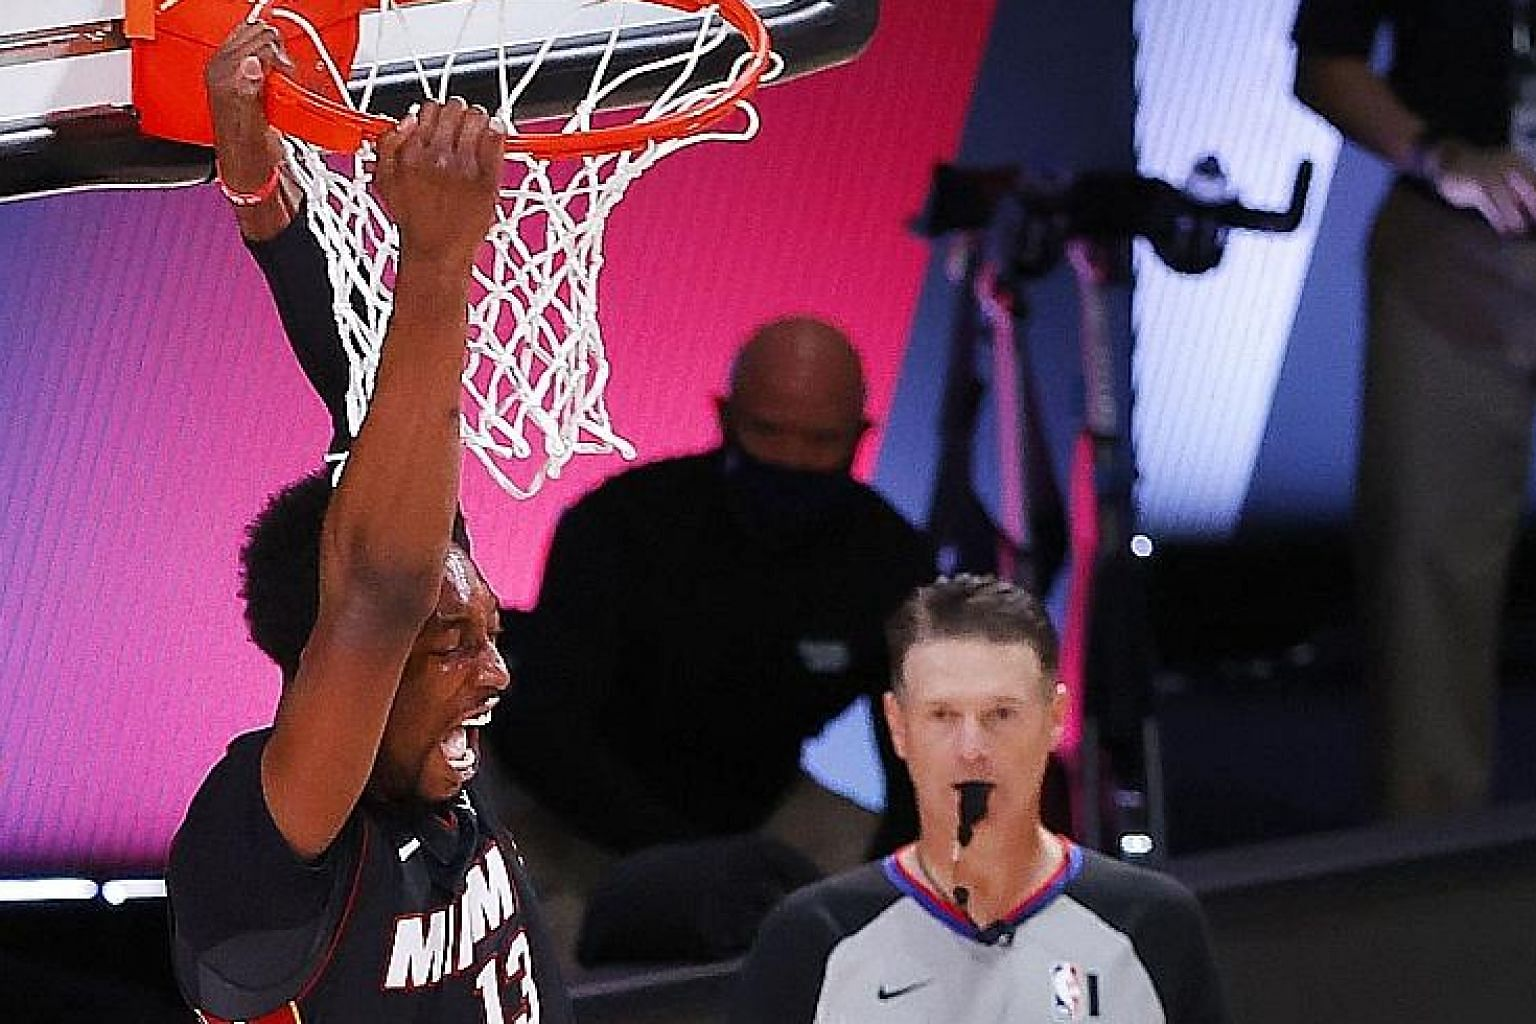 Miami's Bam Adebayo dunking the ball over Boston's Kemba Walker in Game Six of the Eastern Conference Finals on Sunday. He had a career-high 32 points and 14 rebounds in the 125-113 win, which gave his team a 4-2 series success and a place in the NBA